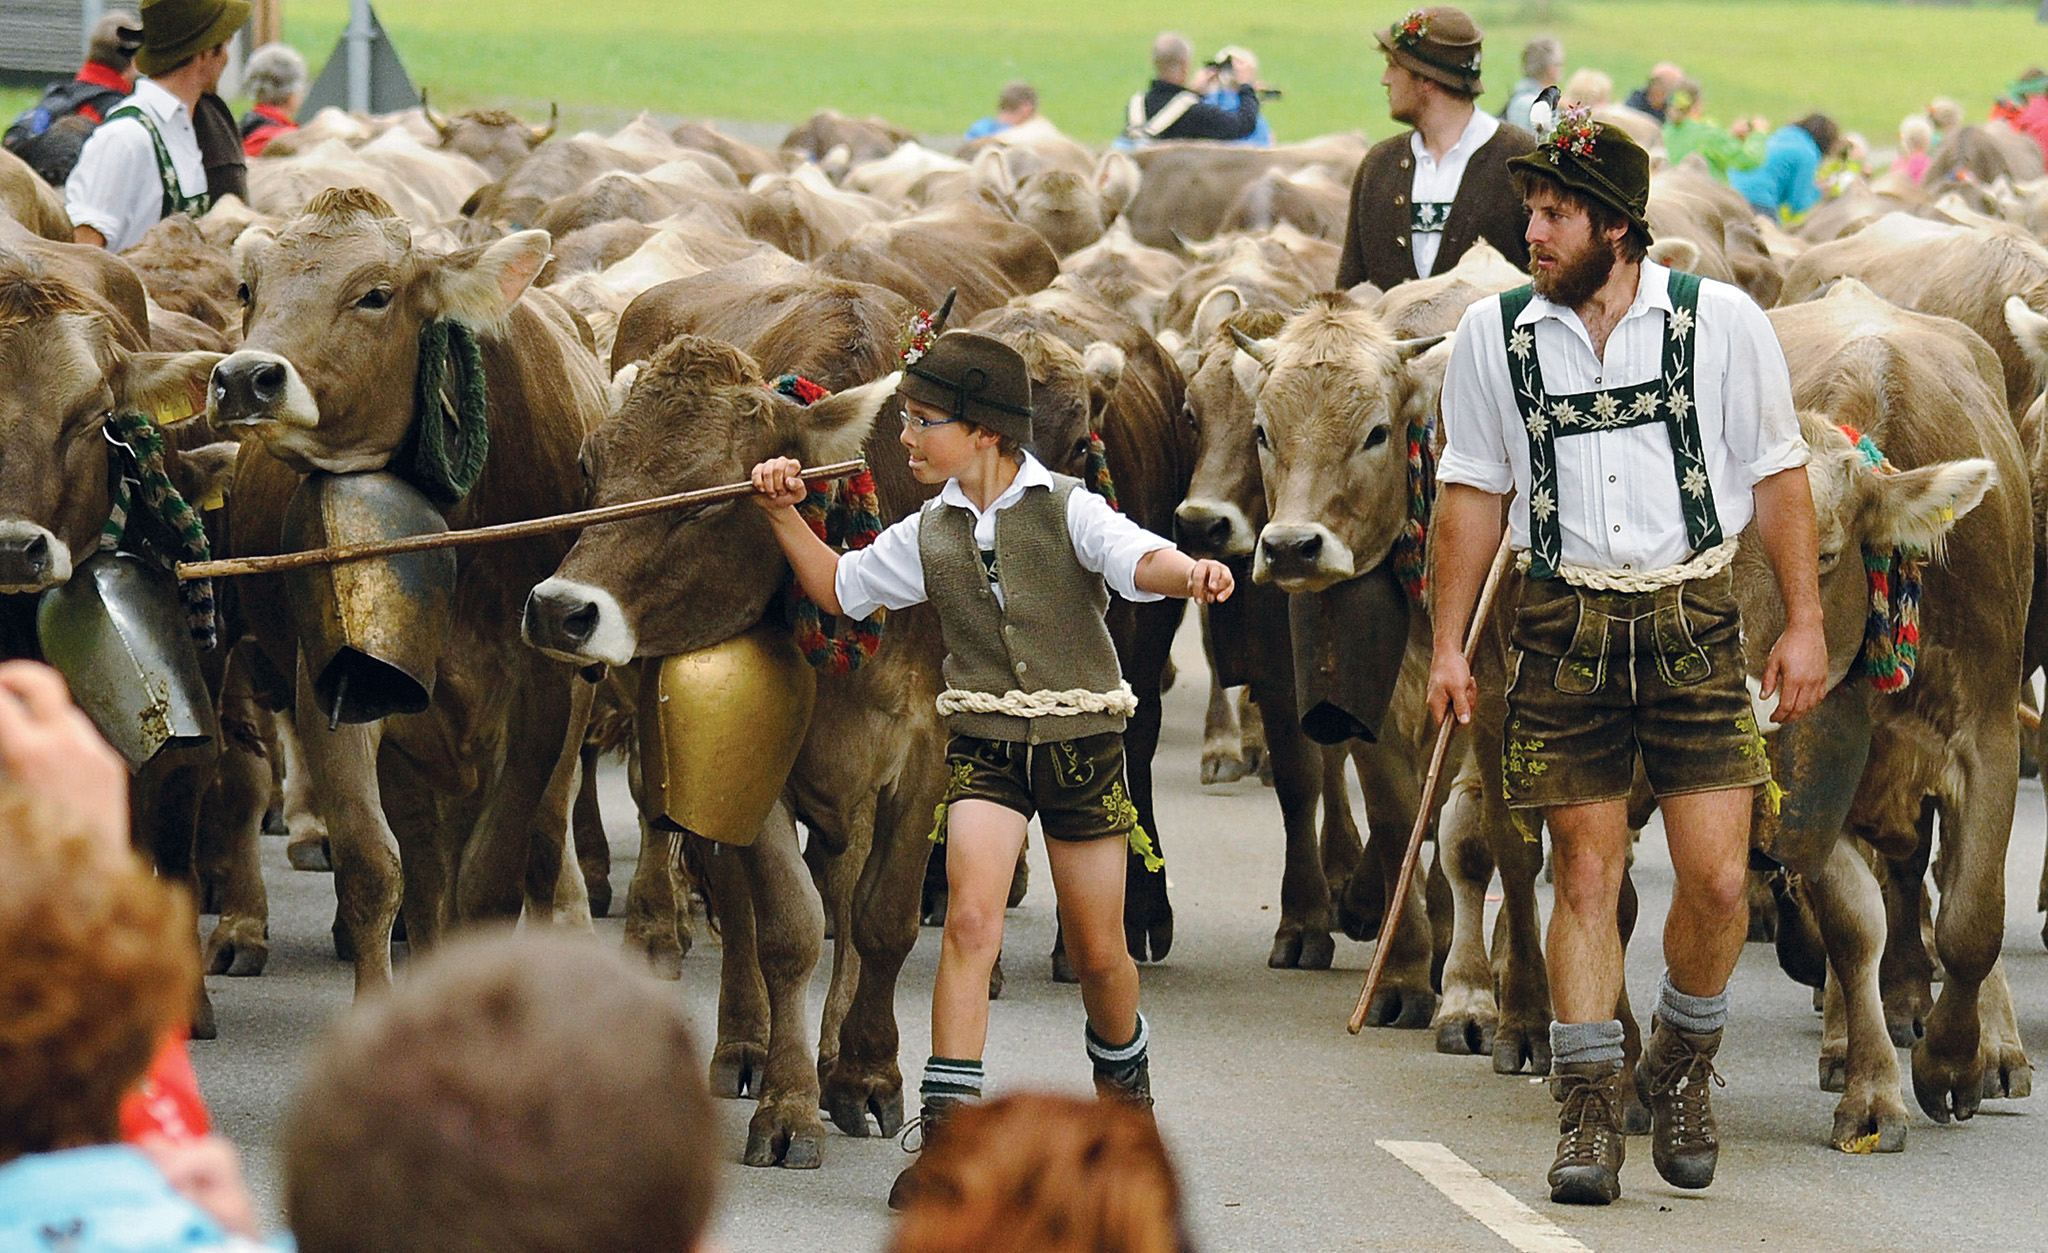 Cattle Return From Alpine Summer Grazing...BAD HINDELANG, GERMANY - SEPTEMBER 11: Herders dressed in traditional lederhosen lead cattle returning from summer alpine grazing during the annual cattle drive in the Allgaeu region on September 11, 2014 in Bad Hindelang, Germany. Every year cattle herders bring the animals to Bavarian mountain meadows in the spring and remain their through the summer before bringing them back to farms in the villages below for the winter. The herders spend the summer living in a mountain hut called an Alm, often without electricity in a tradition going back centuries. This year brought an unusually high number of cattle fatalities during the summer, which farmers attribute to poisoning from natural causes. In the last few months there have also been several cases of fatal attacks by cattle against hikers, also an unusual occurrence. (Photo by Philipp Guelland/Getty Images)